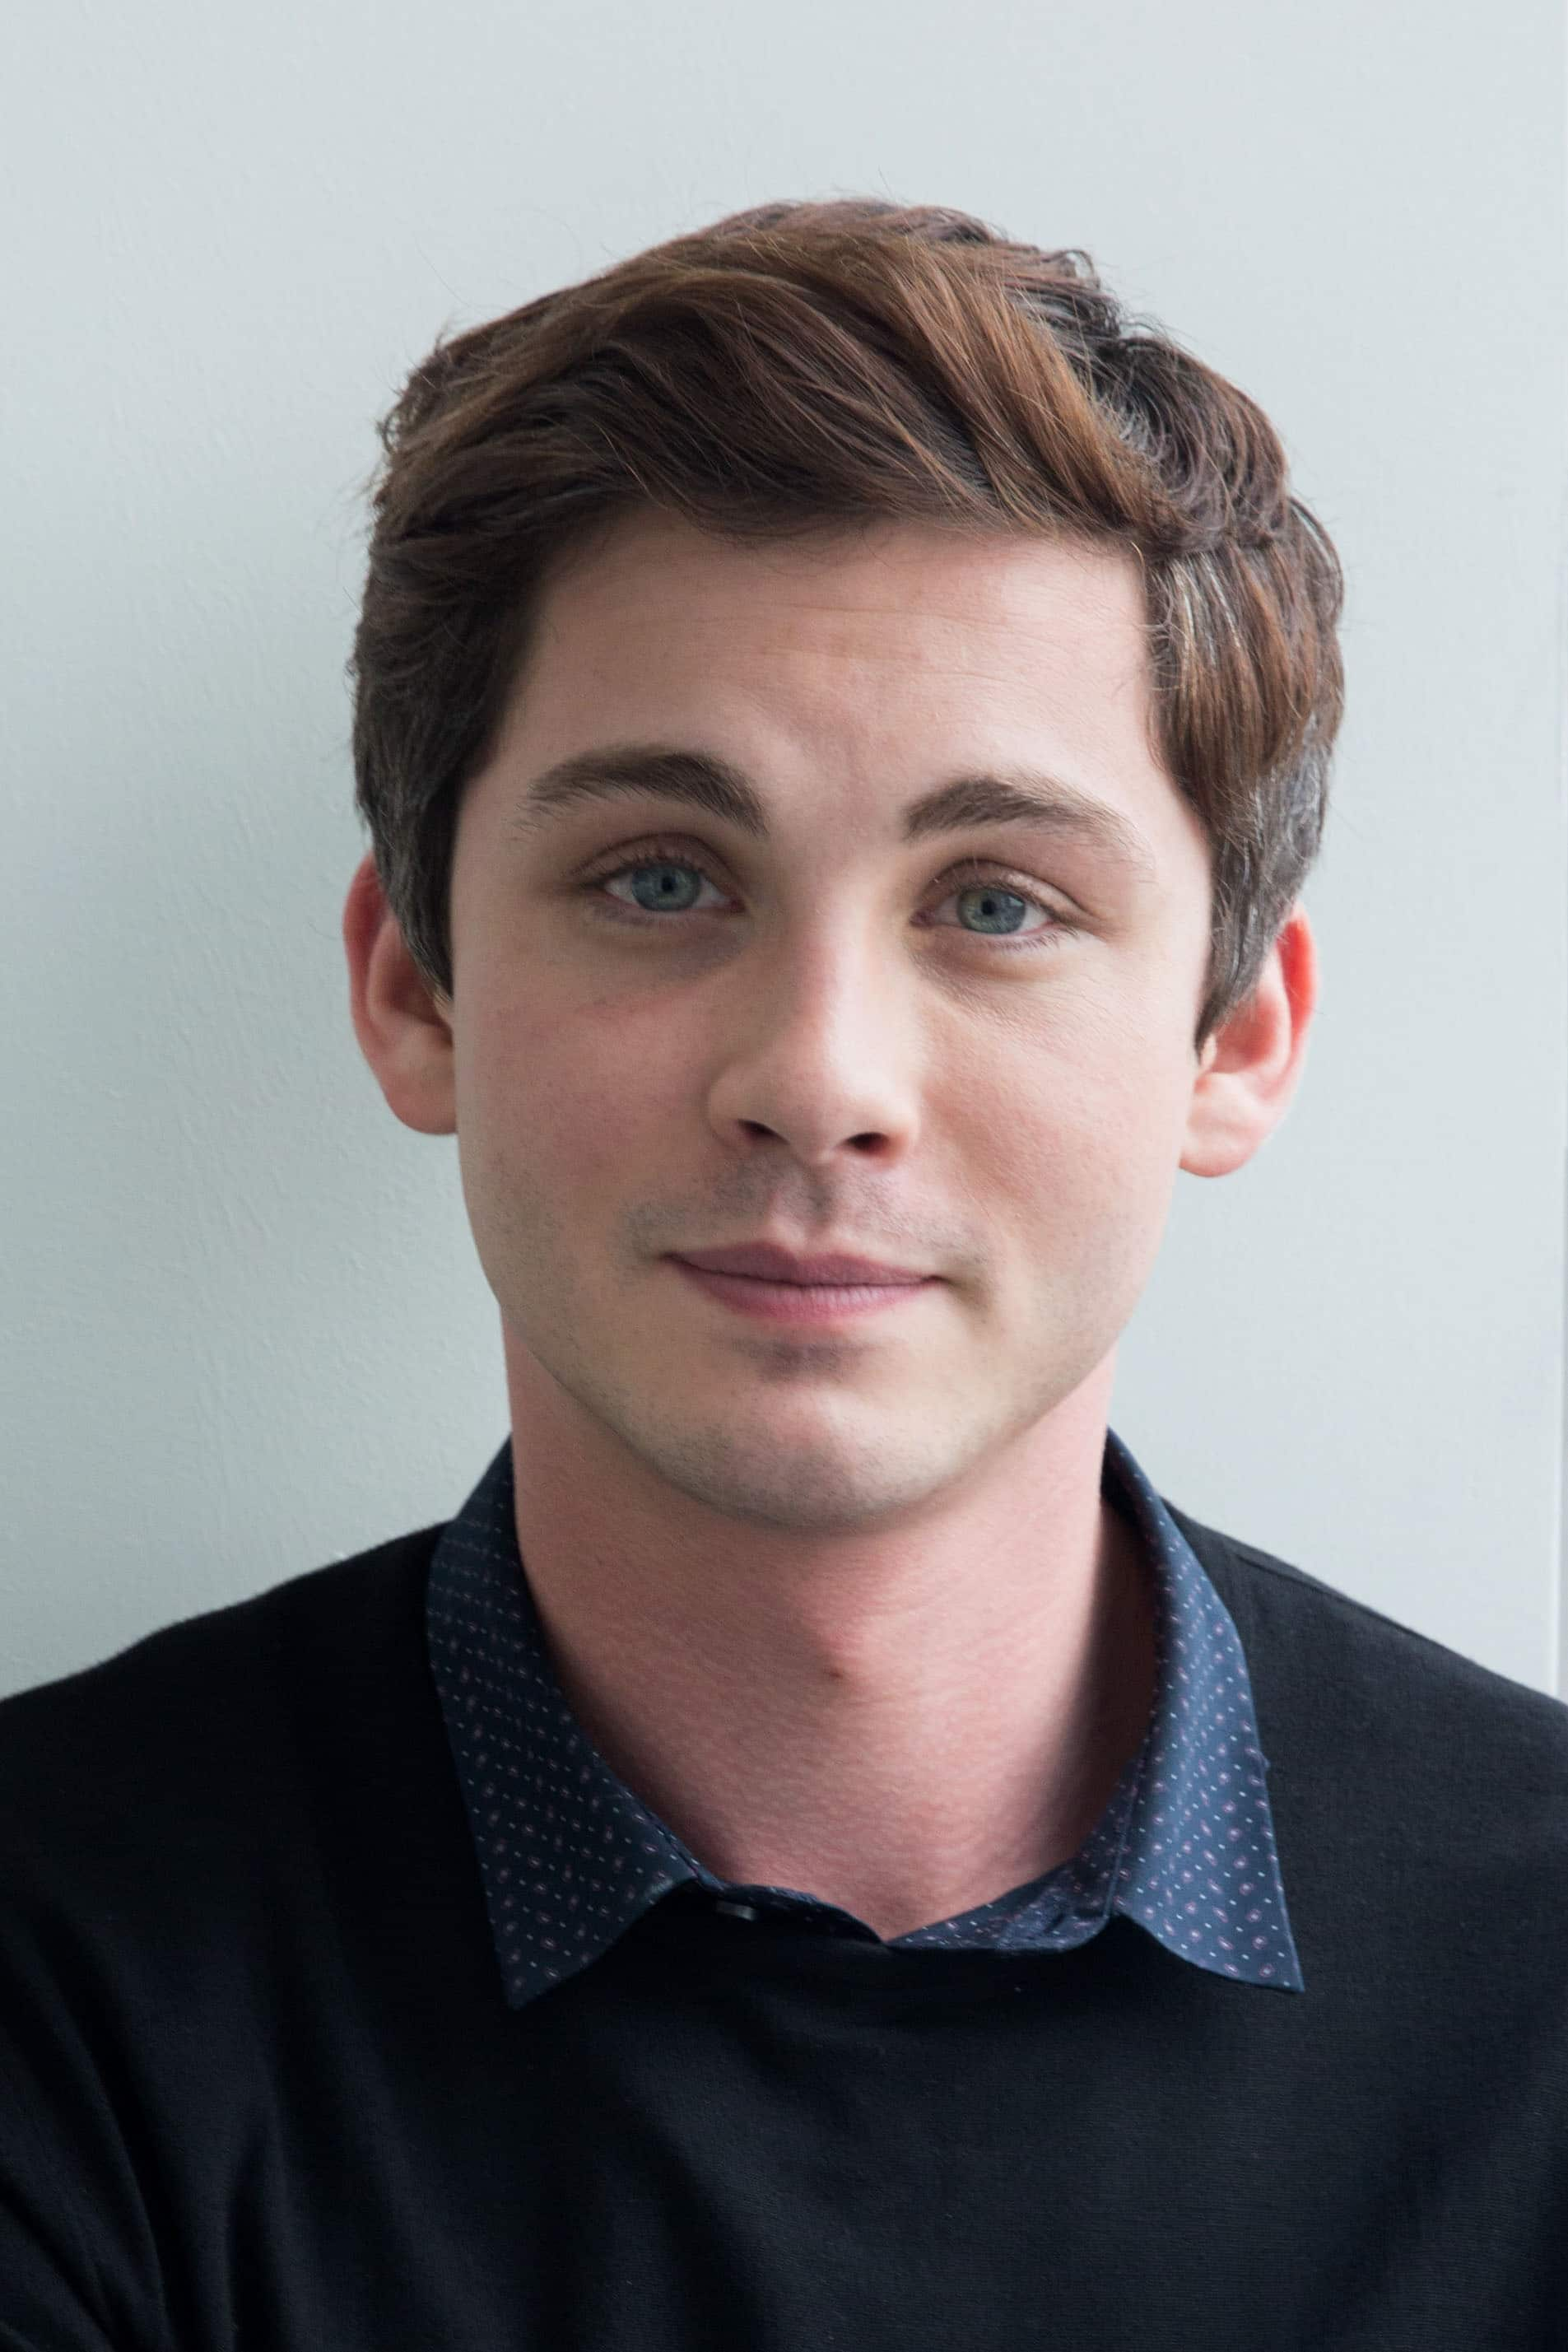 Logan Lerman American Actor